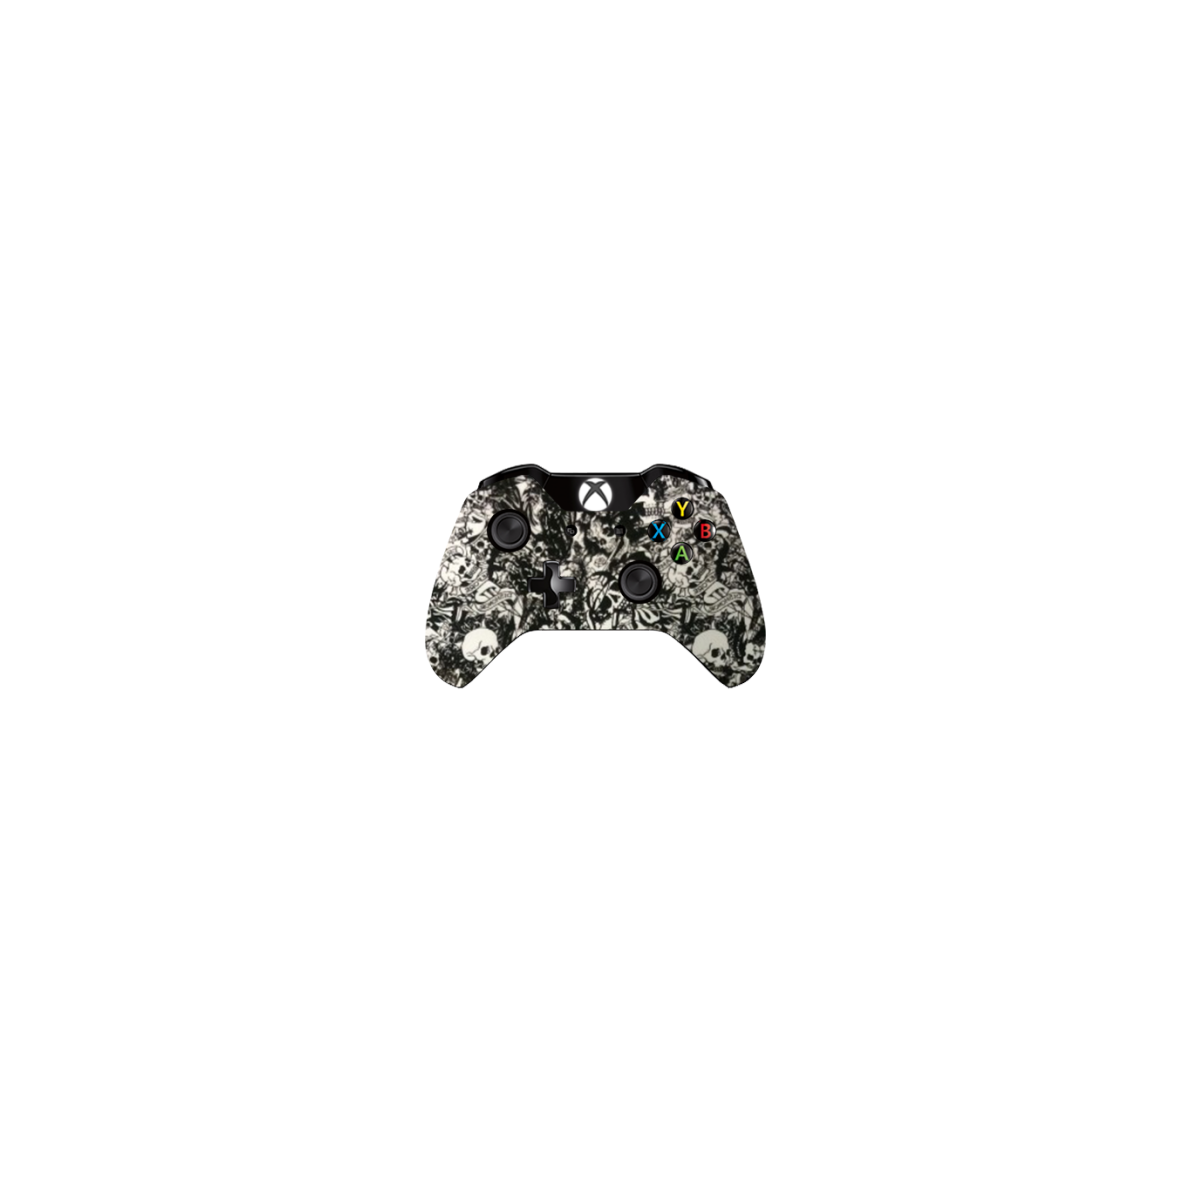 manette xbox one gameur elite black